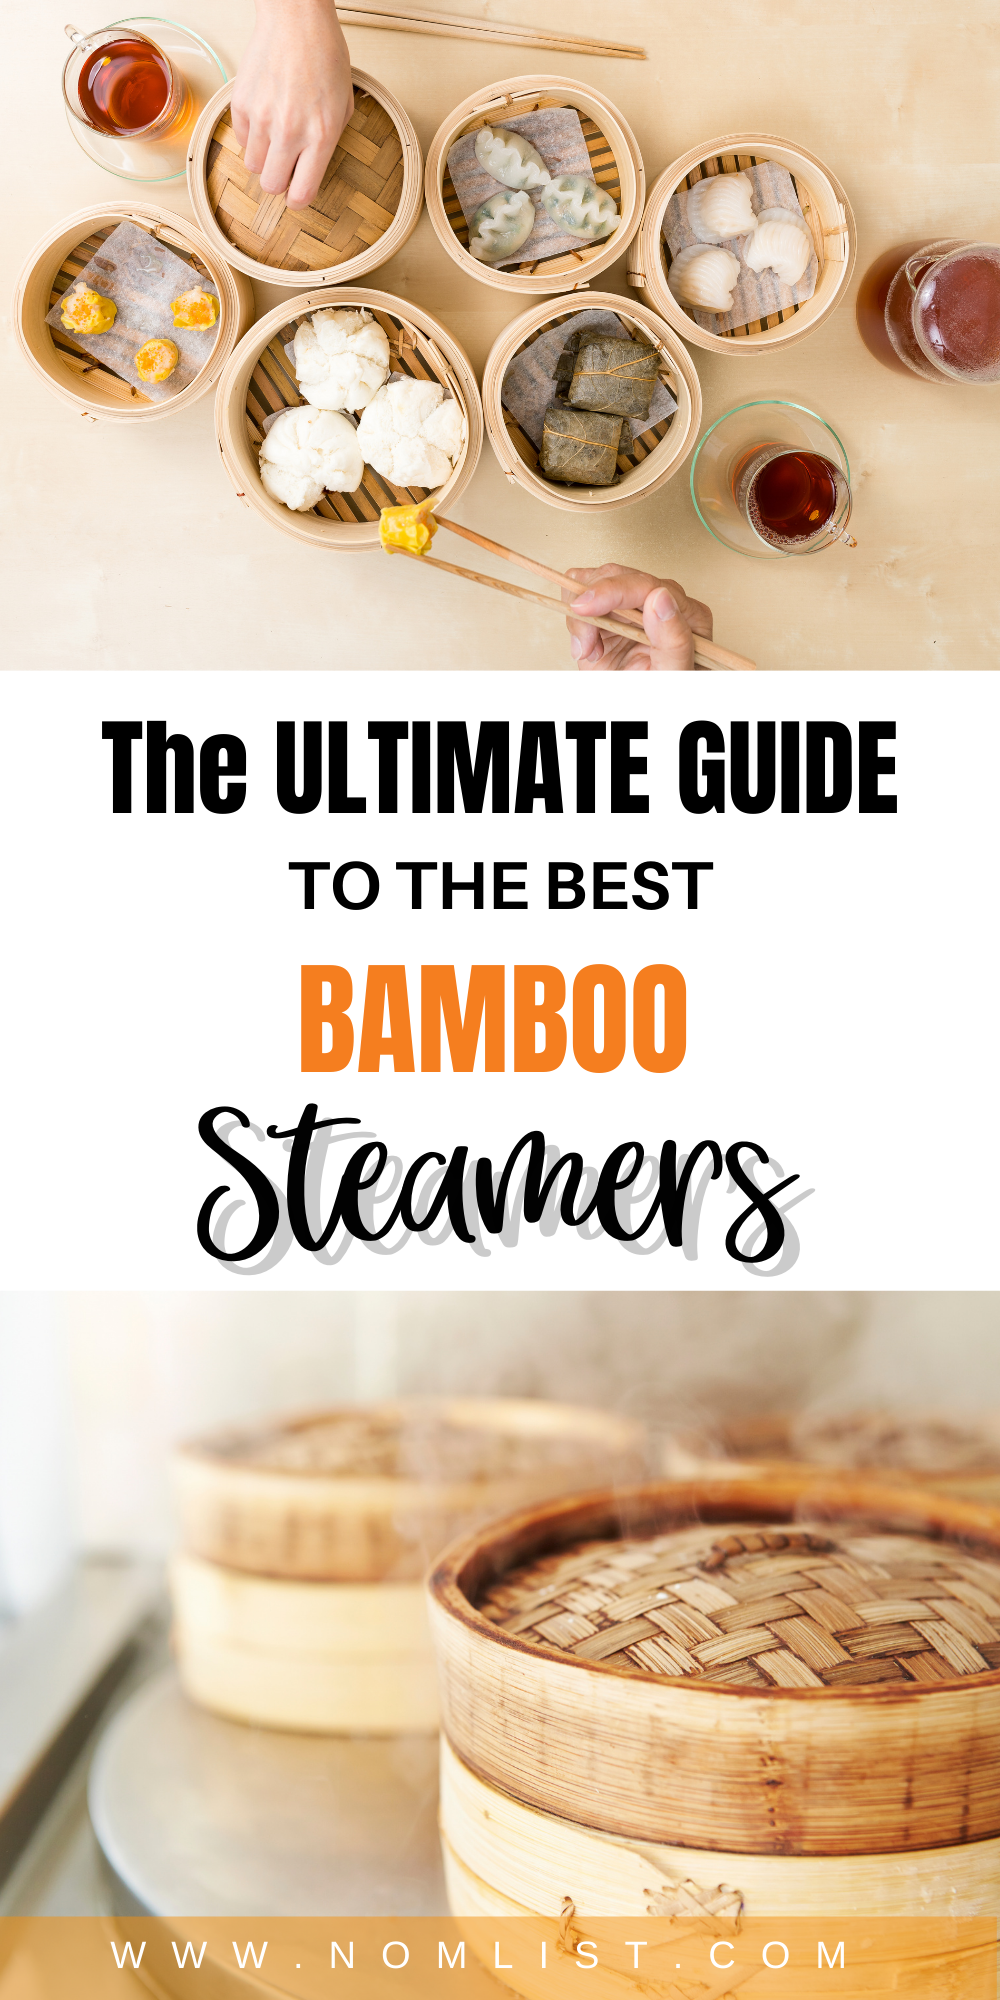 If you ever had Chinese dim sum on a Sunday mid-morning, then you're definitely familiar with the scrumptious delicacies a bamboo steamer can yield. Now, you can actually cook these mouth-watering delights and other steamed cuisines with these best bamboo steamers on the market!